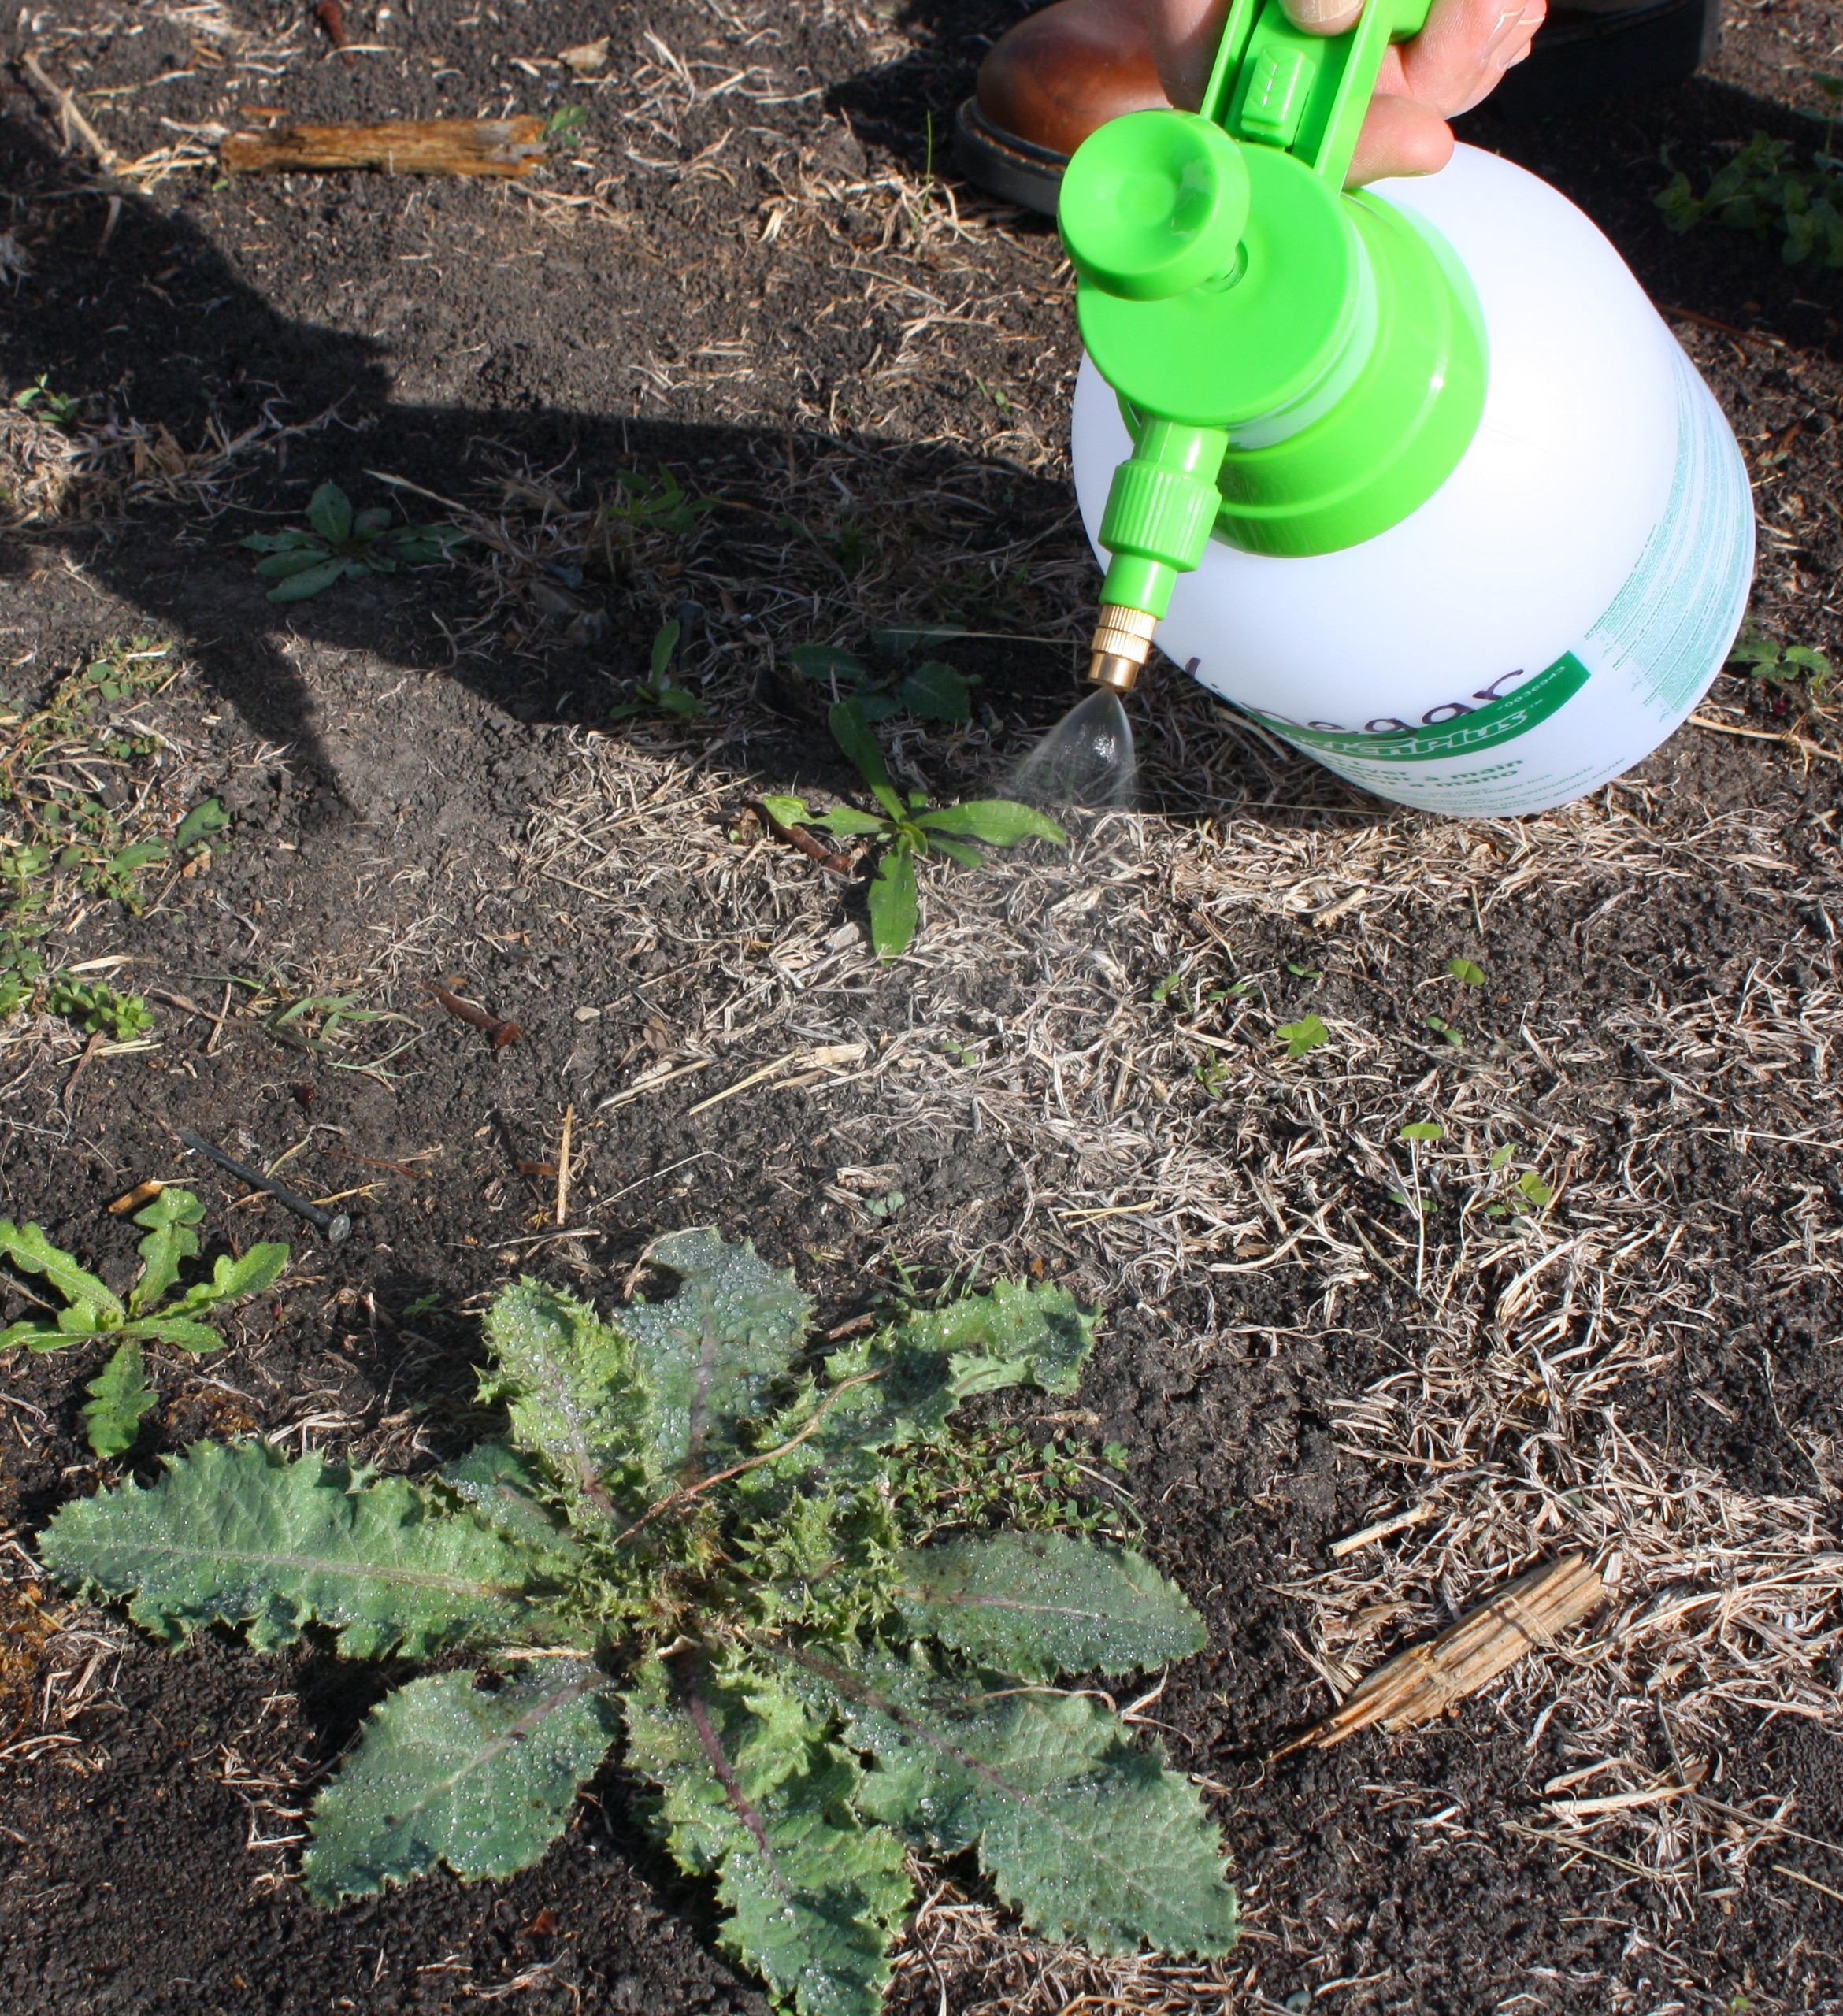 Spraying weeds in flower beds - When Mixing Herbicides Or Pesticides Mix Only What You Need And Clearly Mark Each Container